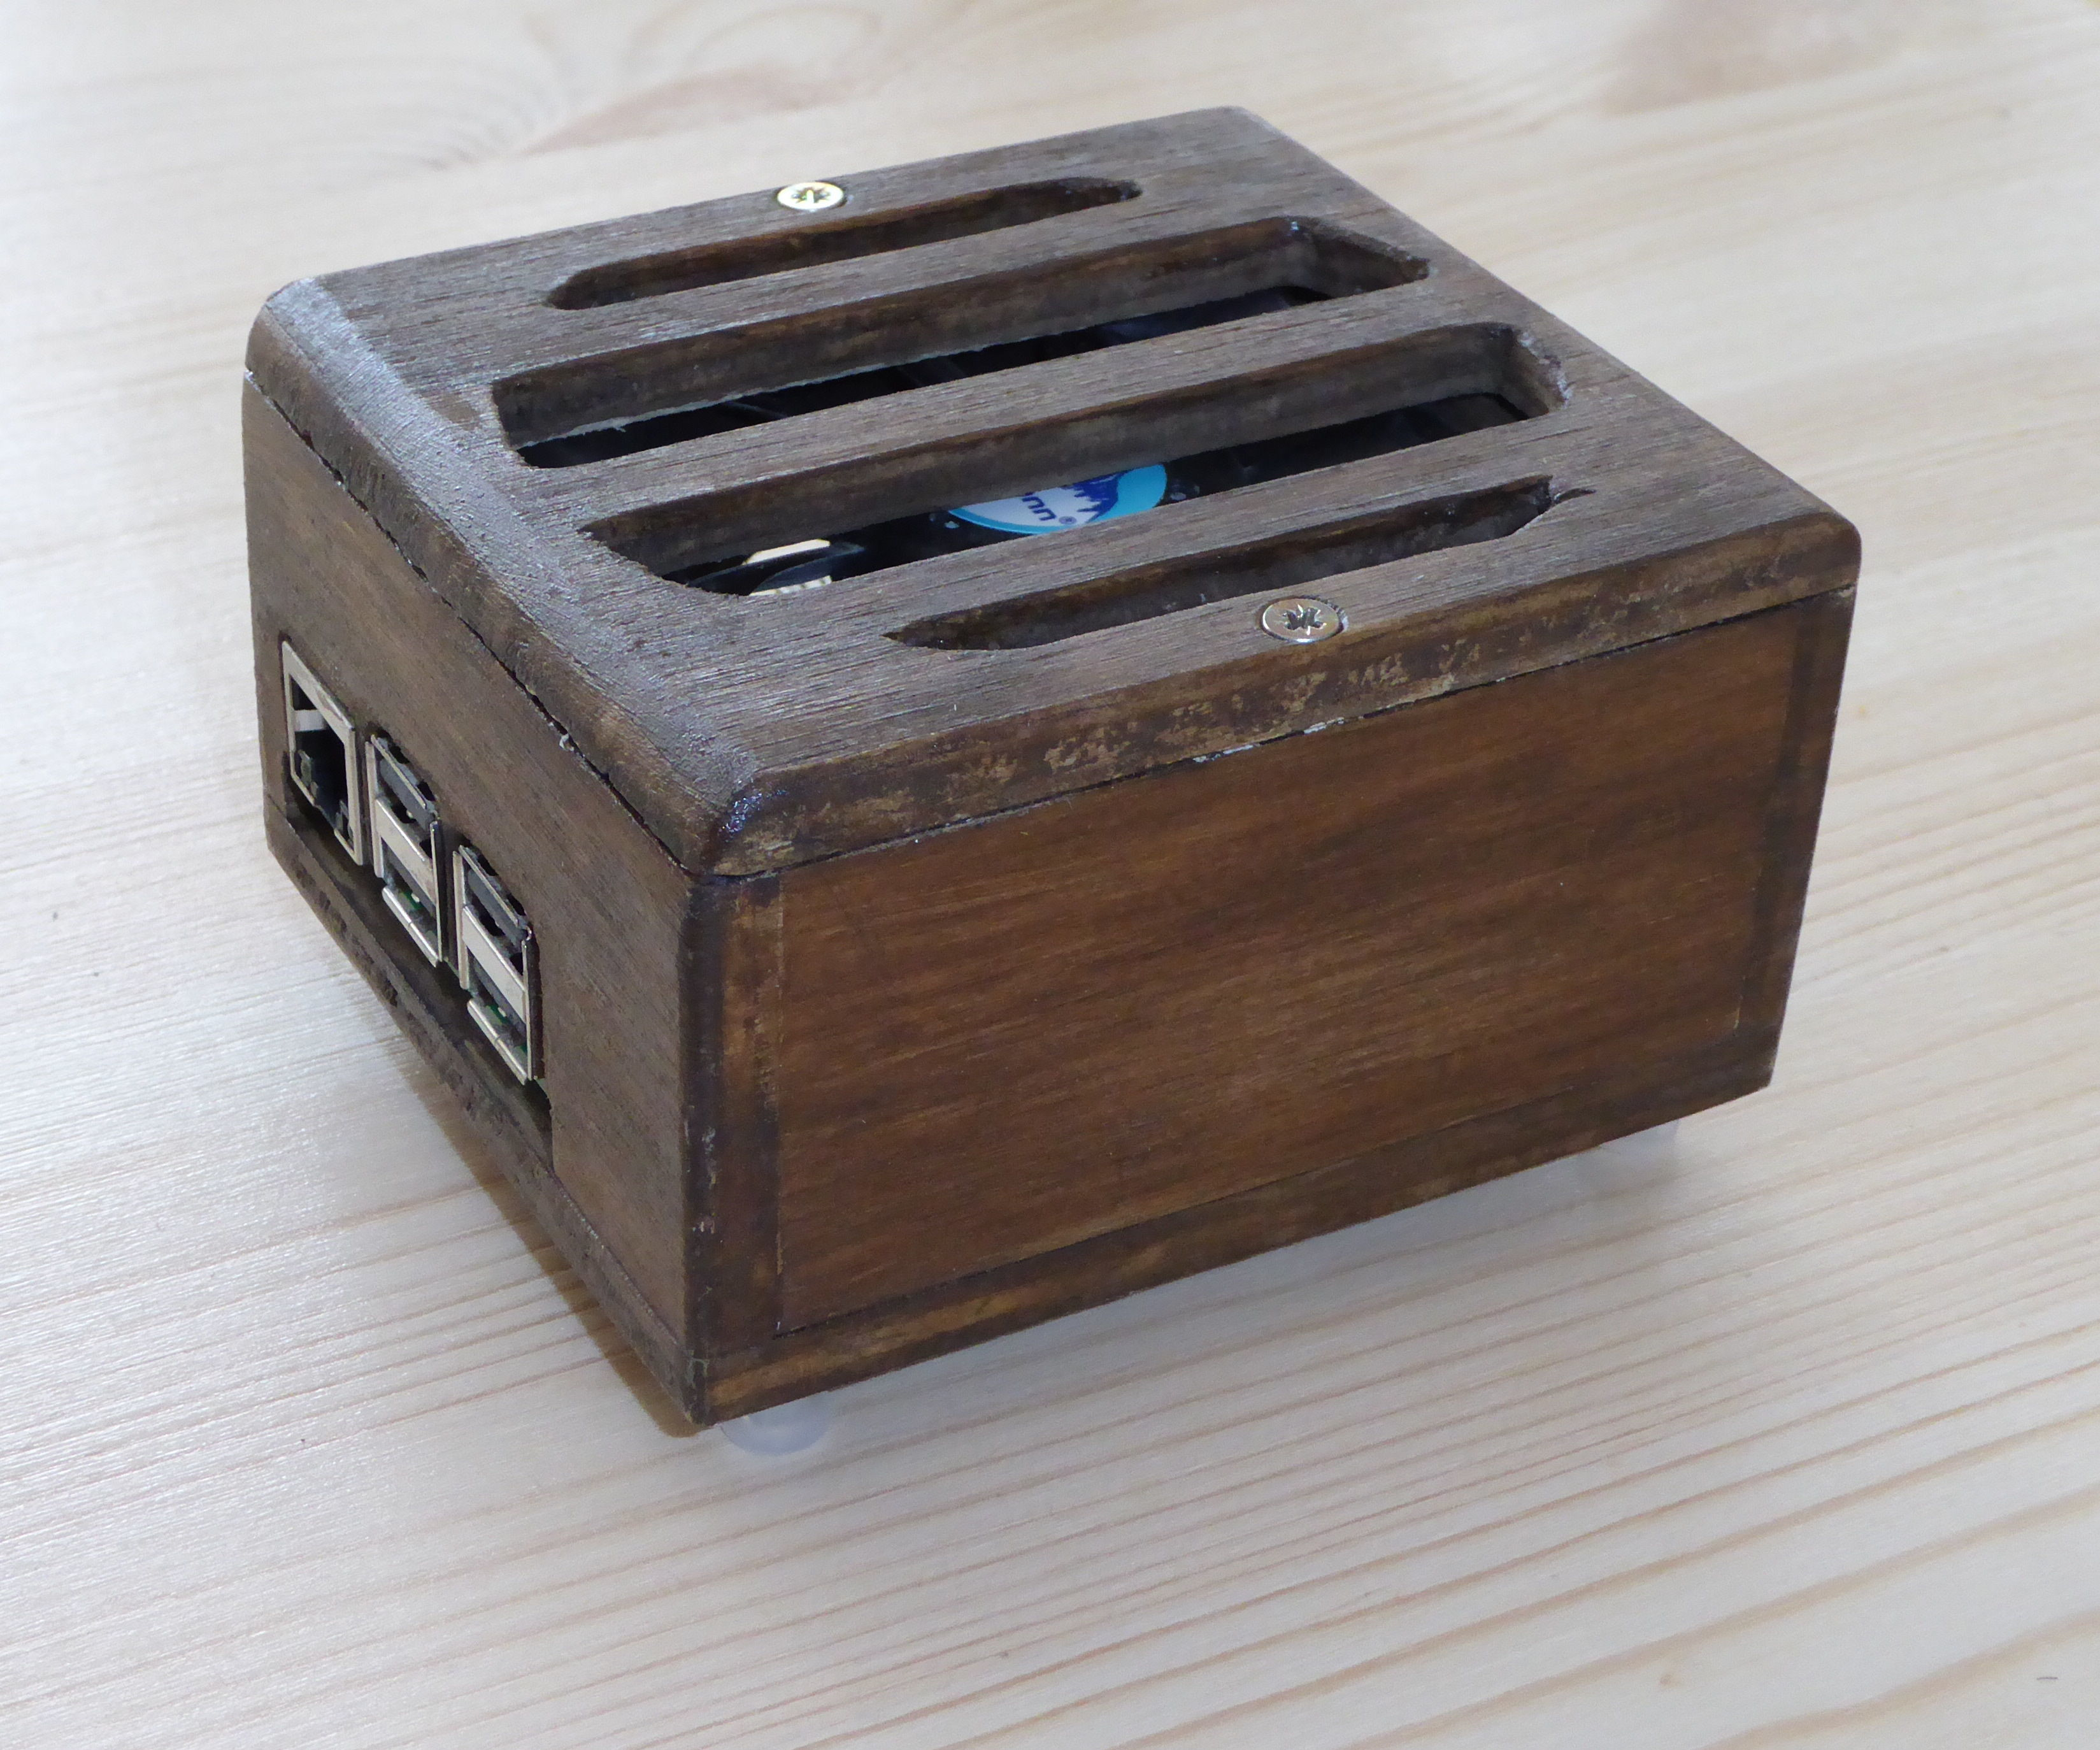 Wooden Raspberry Pi box with fan